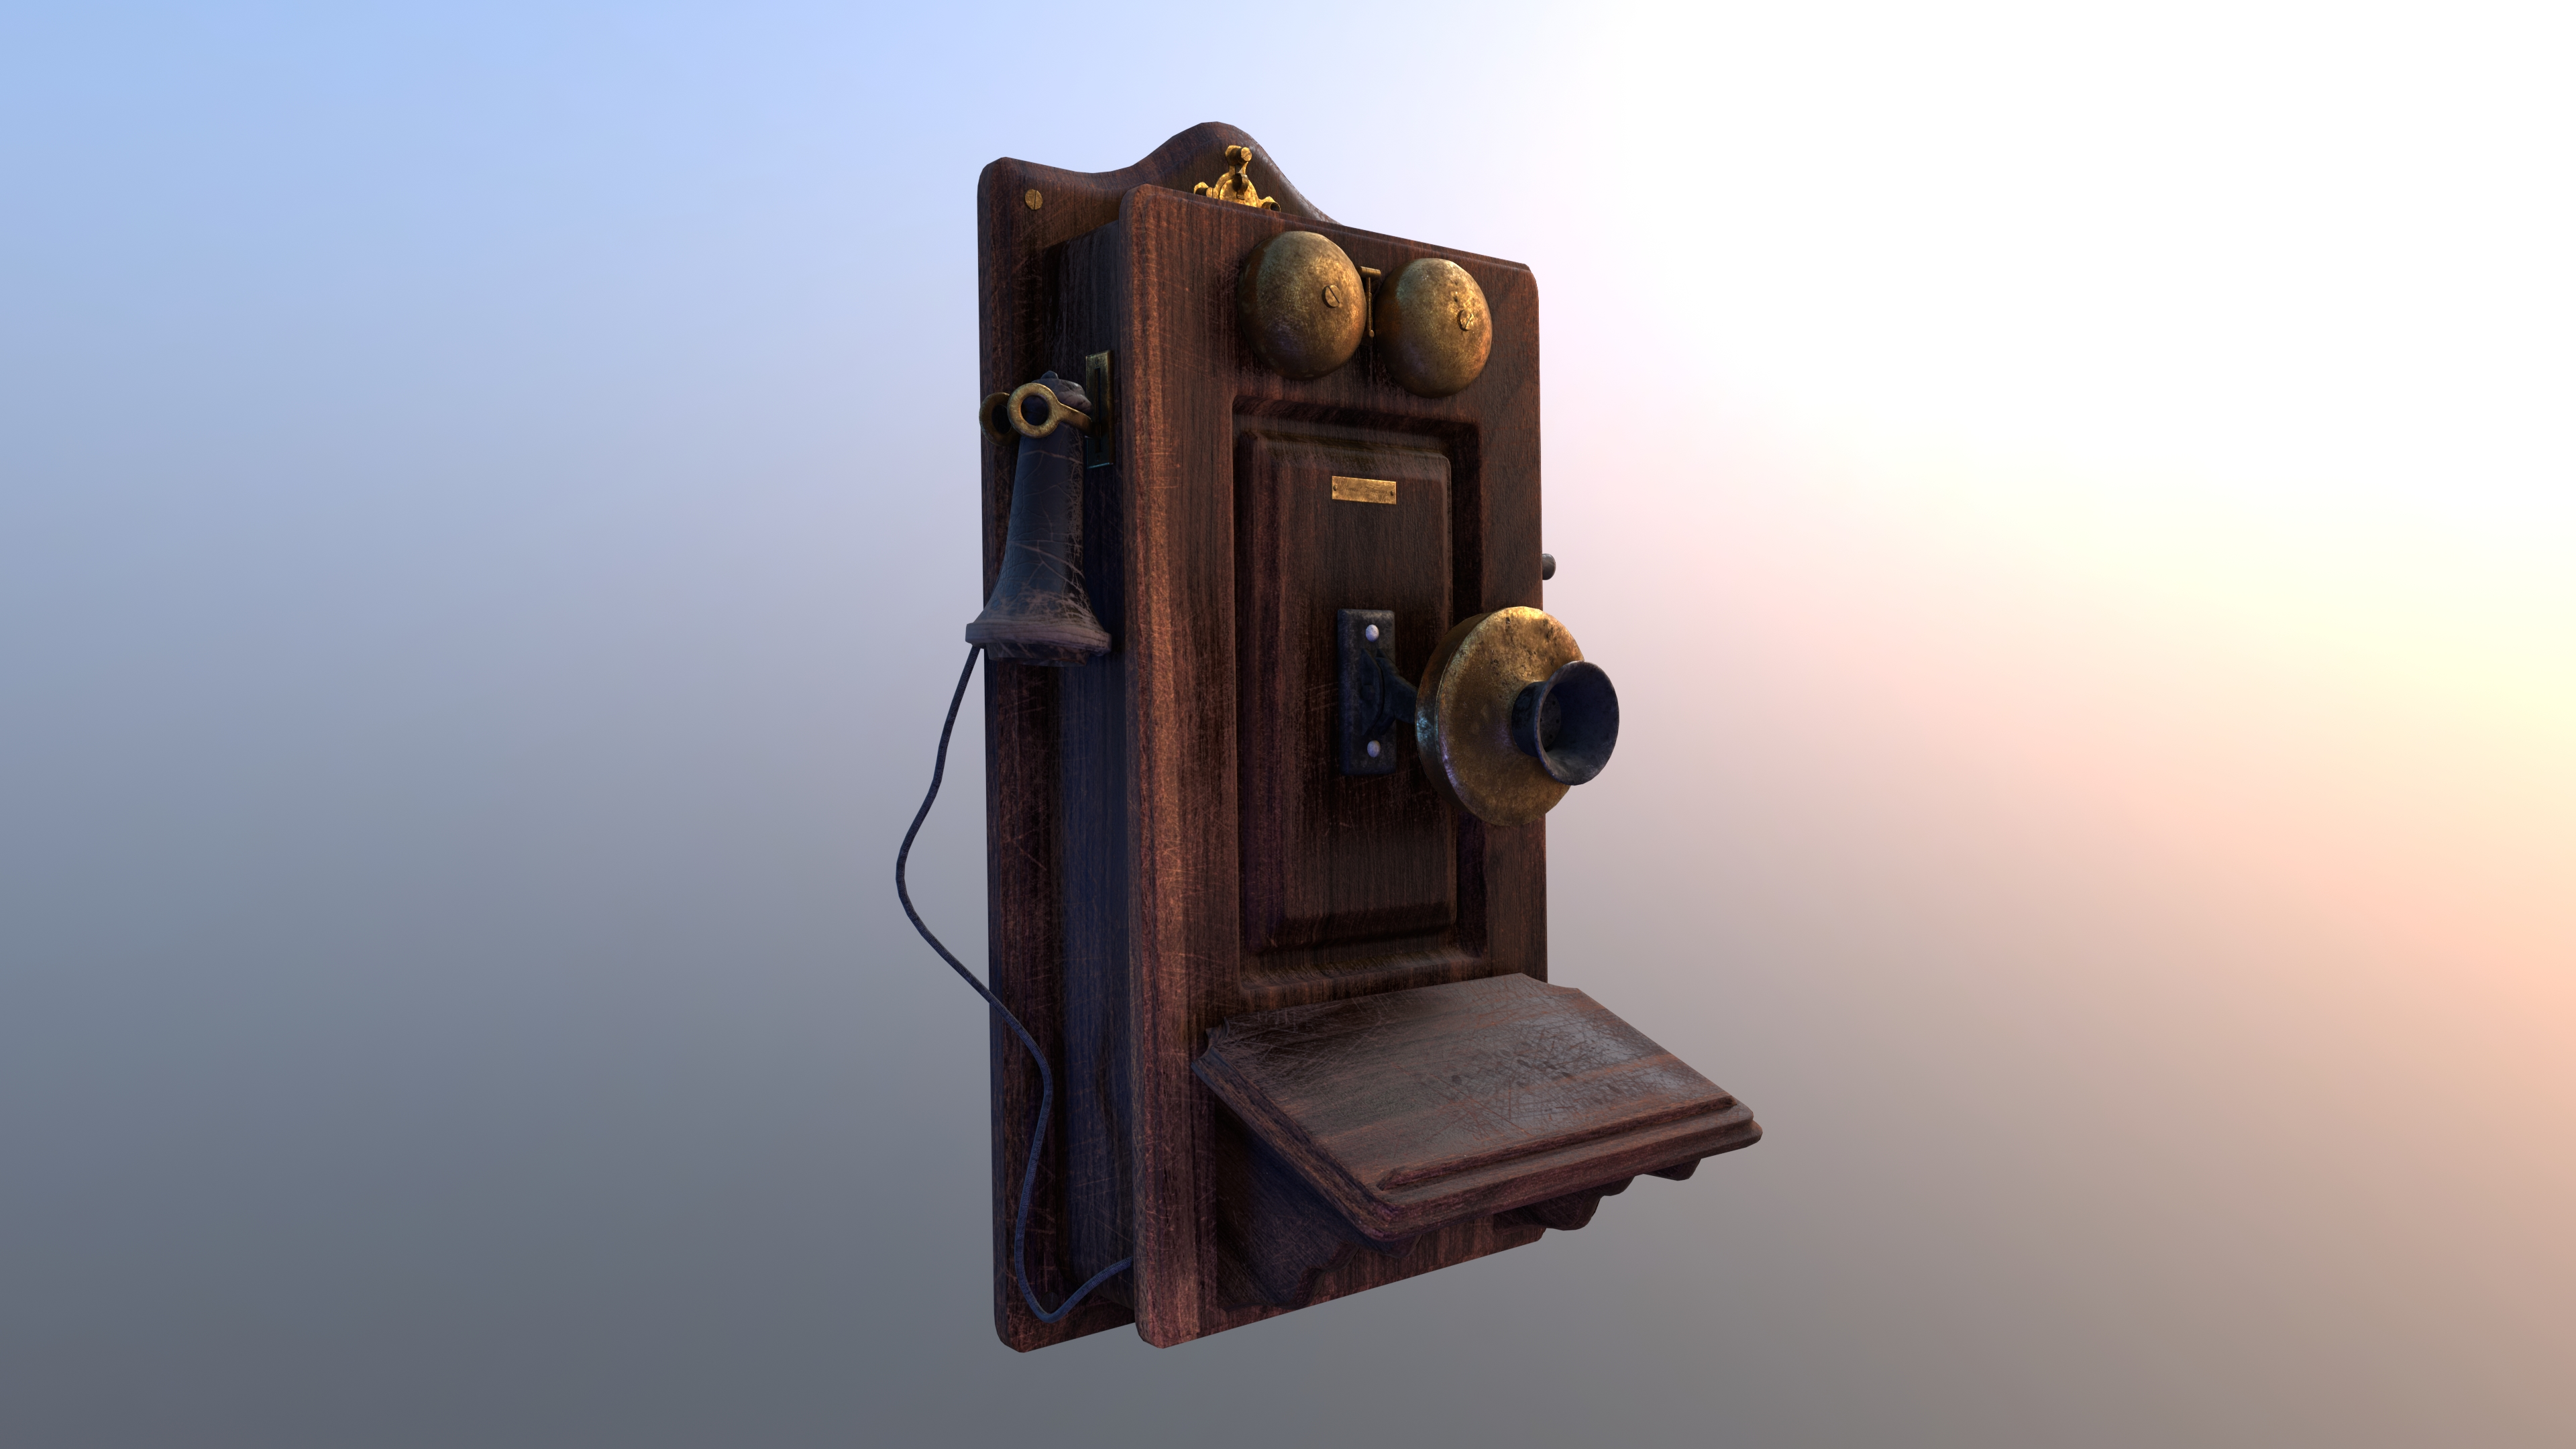 Stewarts Antique Telephone preview image 2